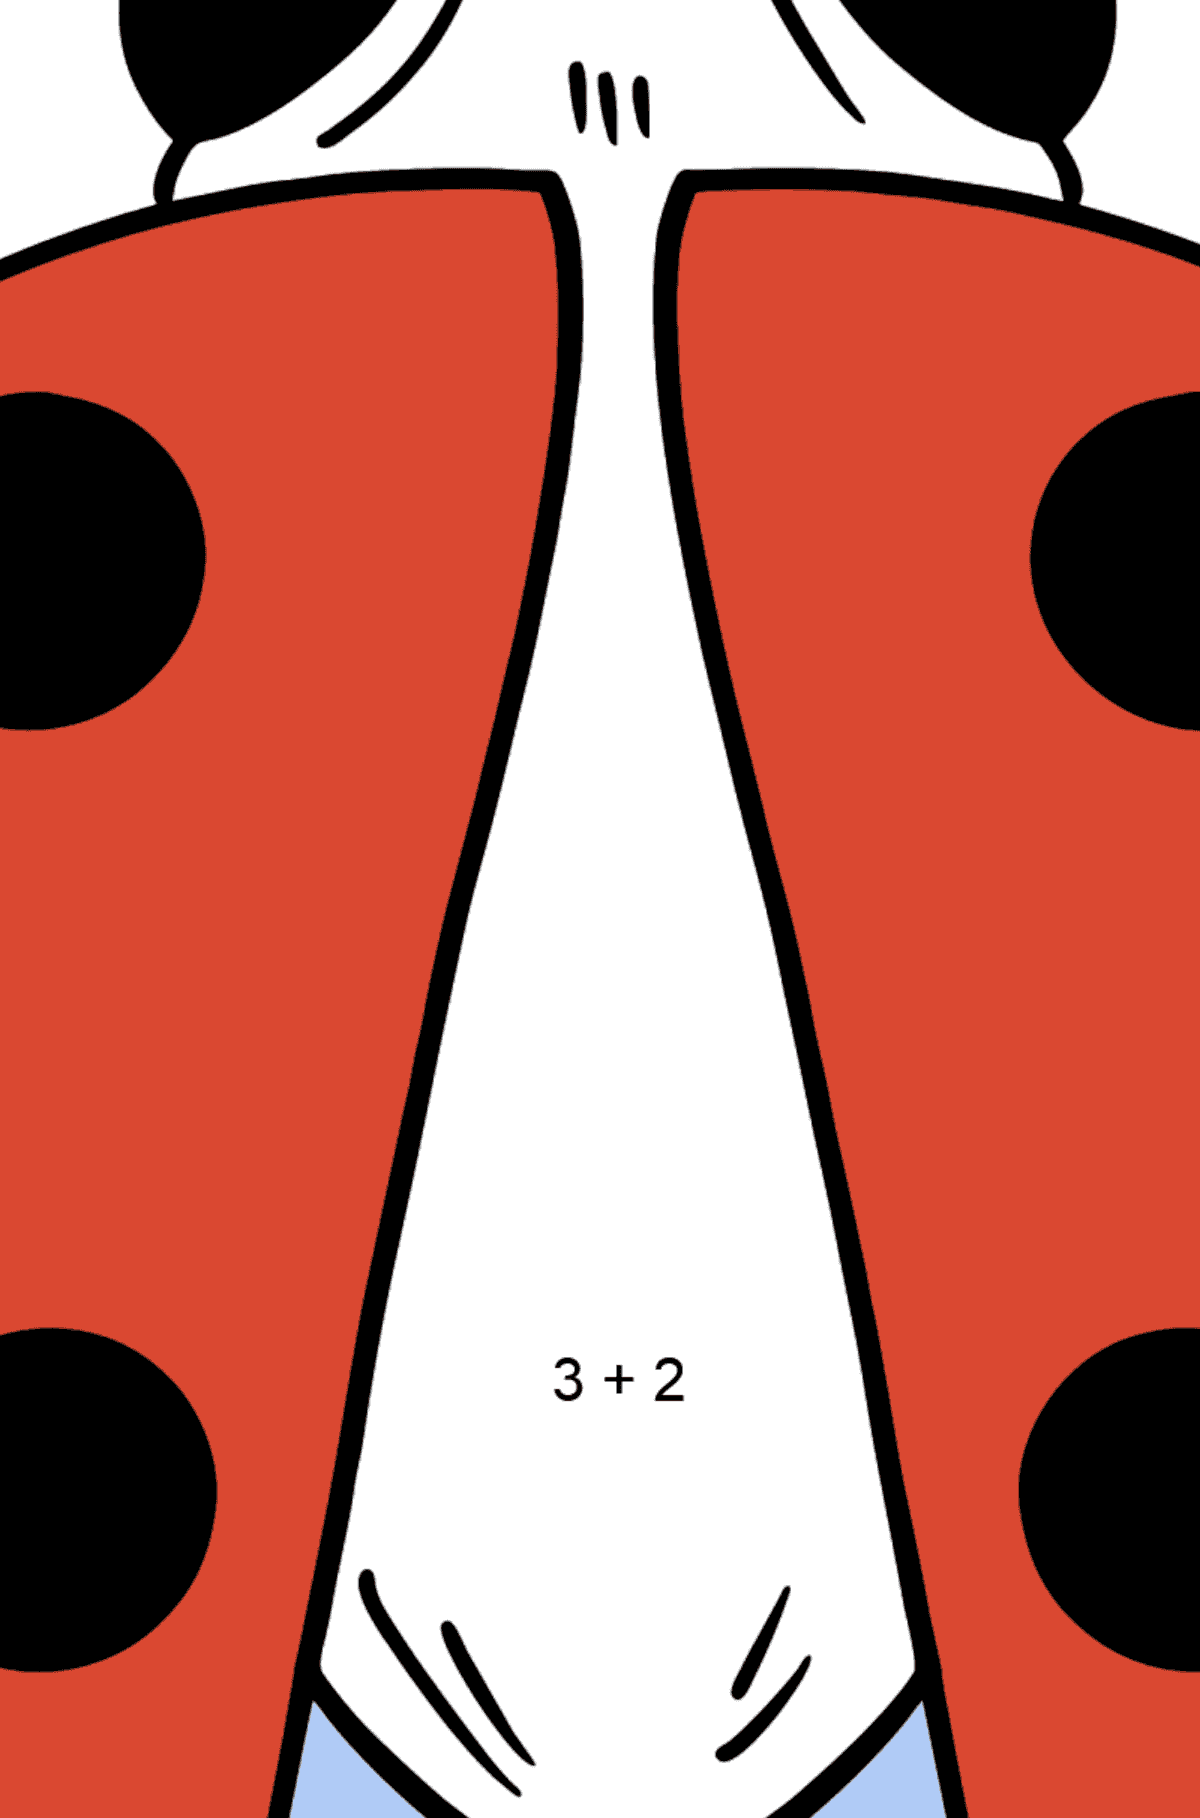 Ladybug coloring page - Math Coloring - Addition for Kids